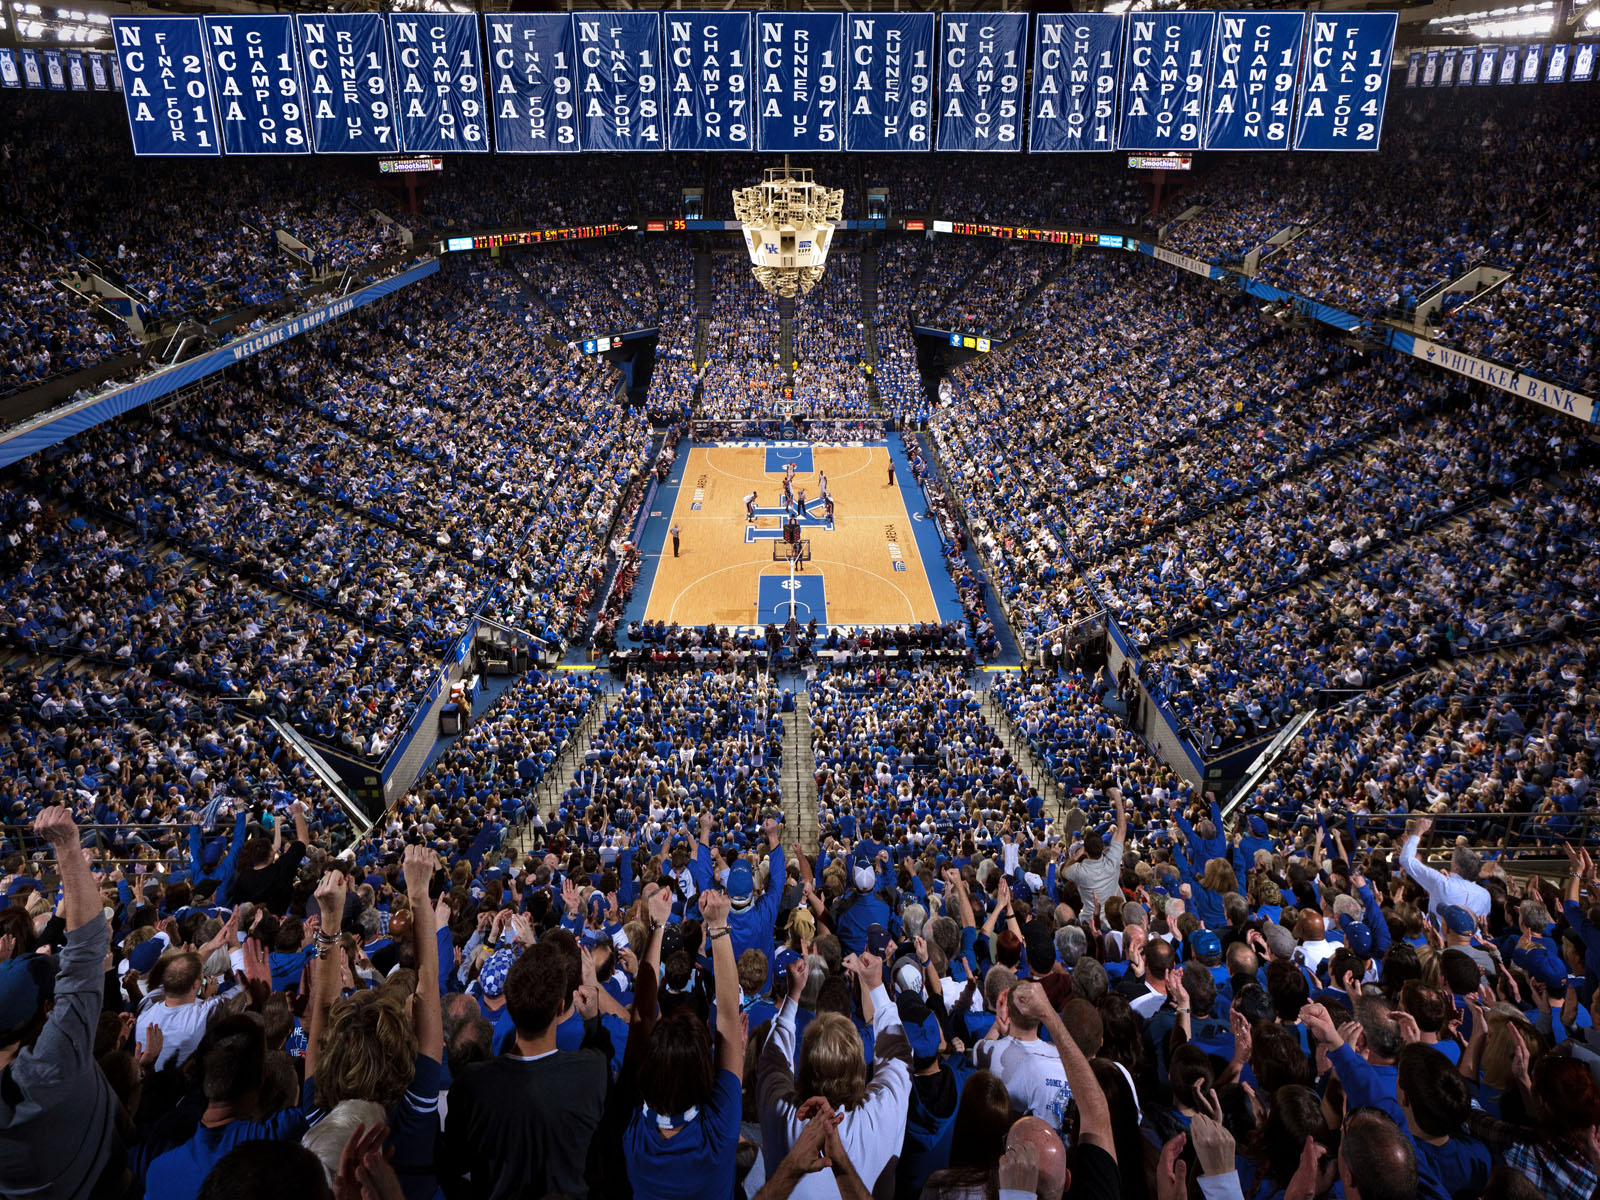 See all the University of Kentucky wallpapers at ukathleticscom 1600x1200